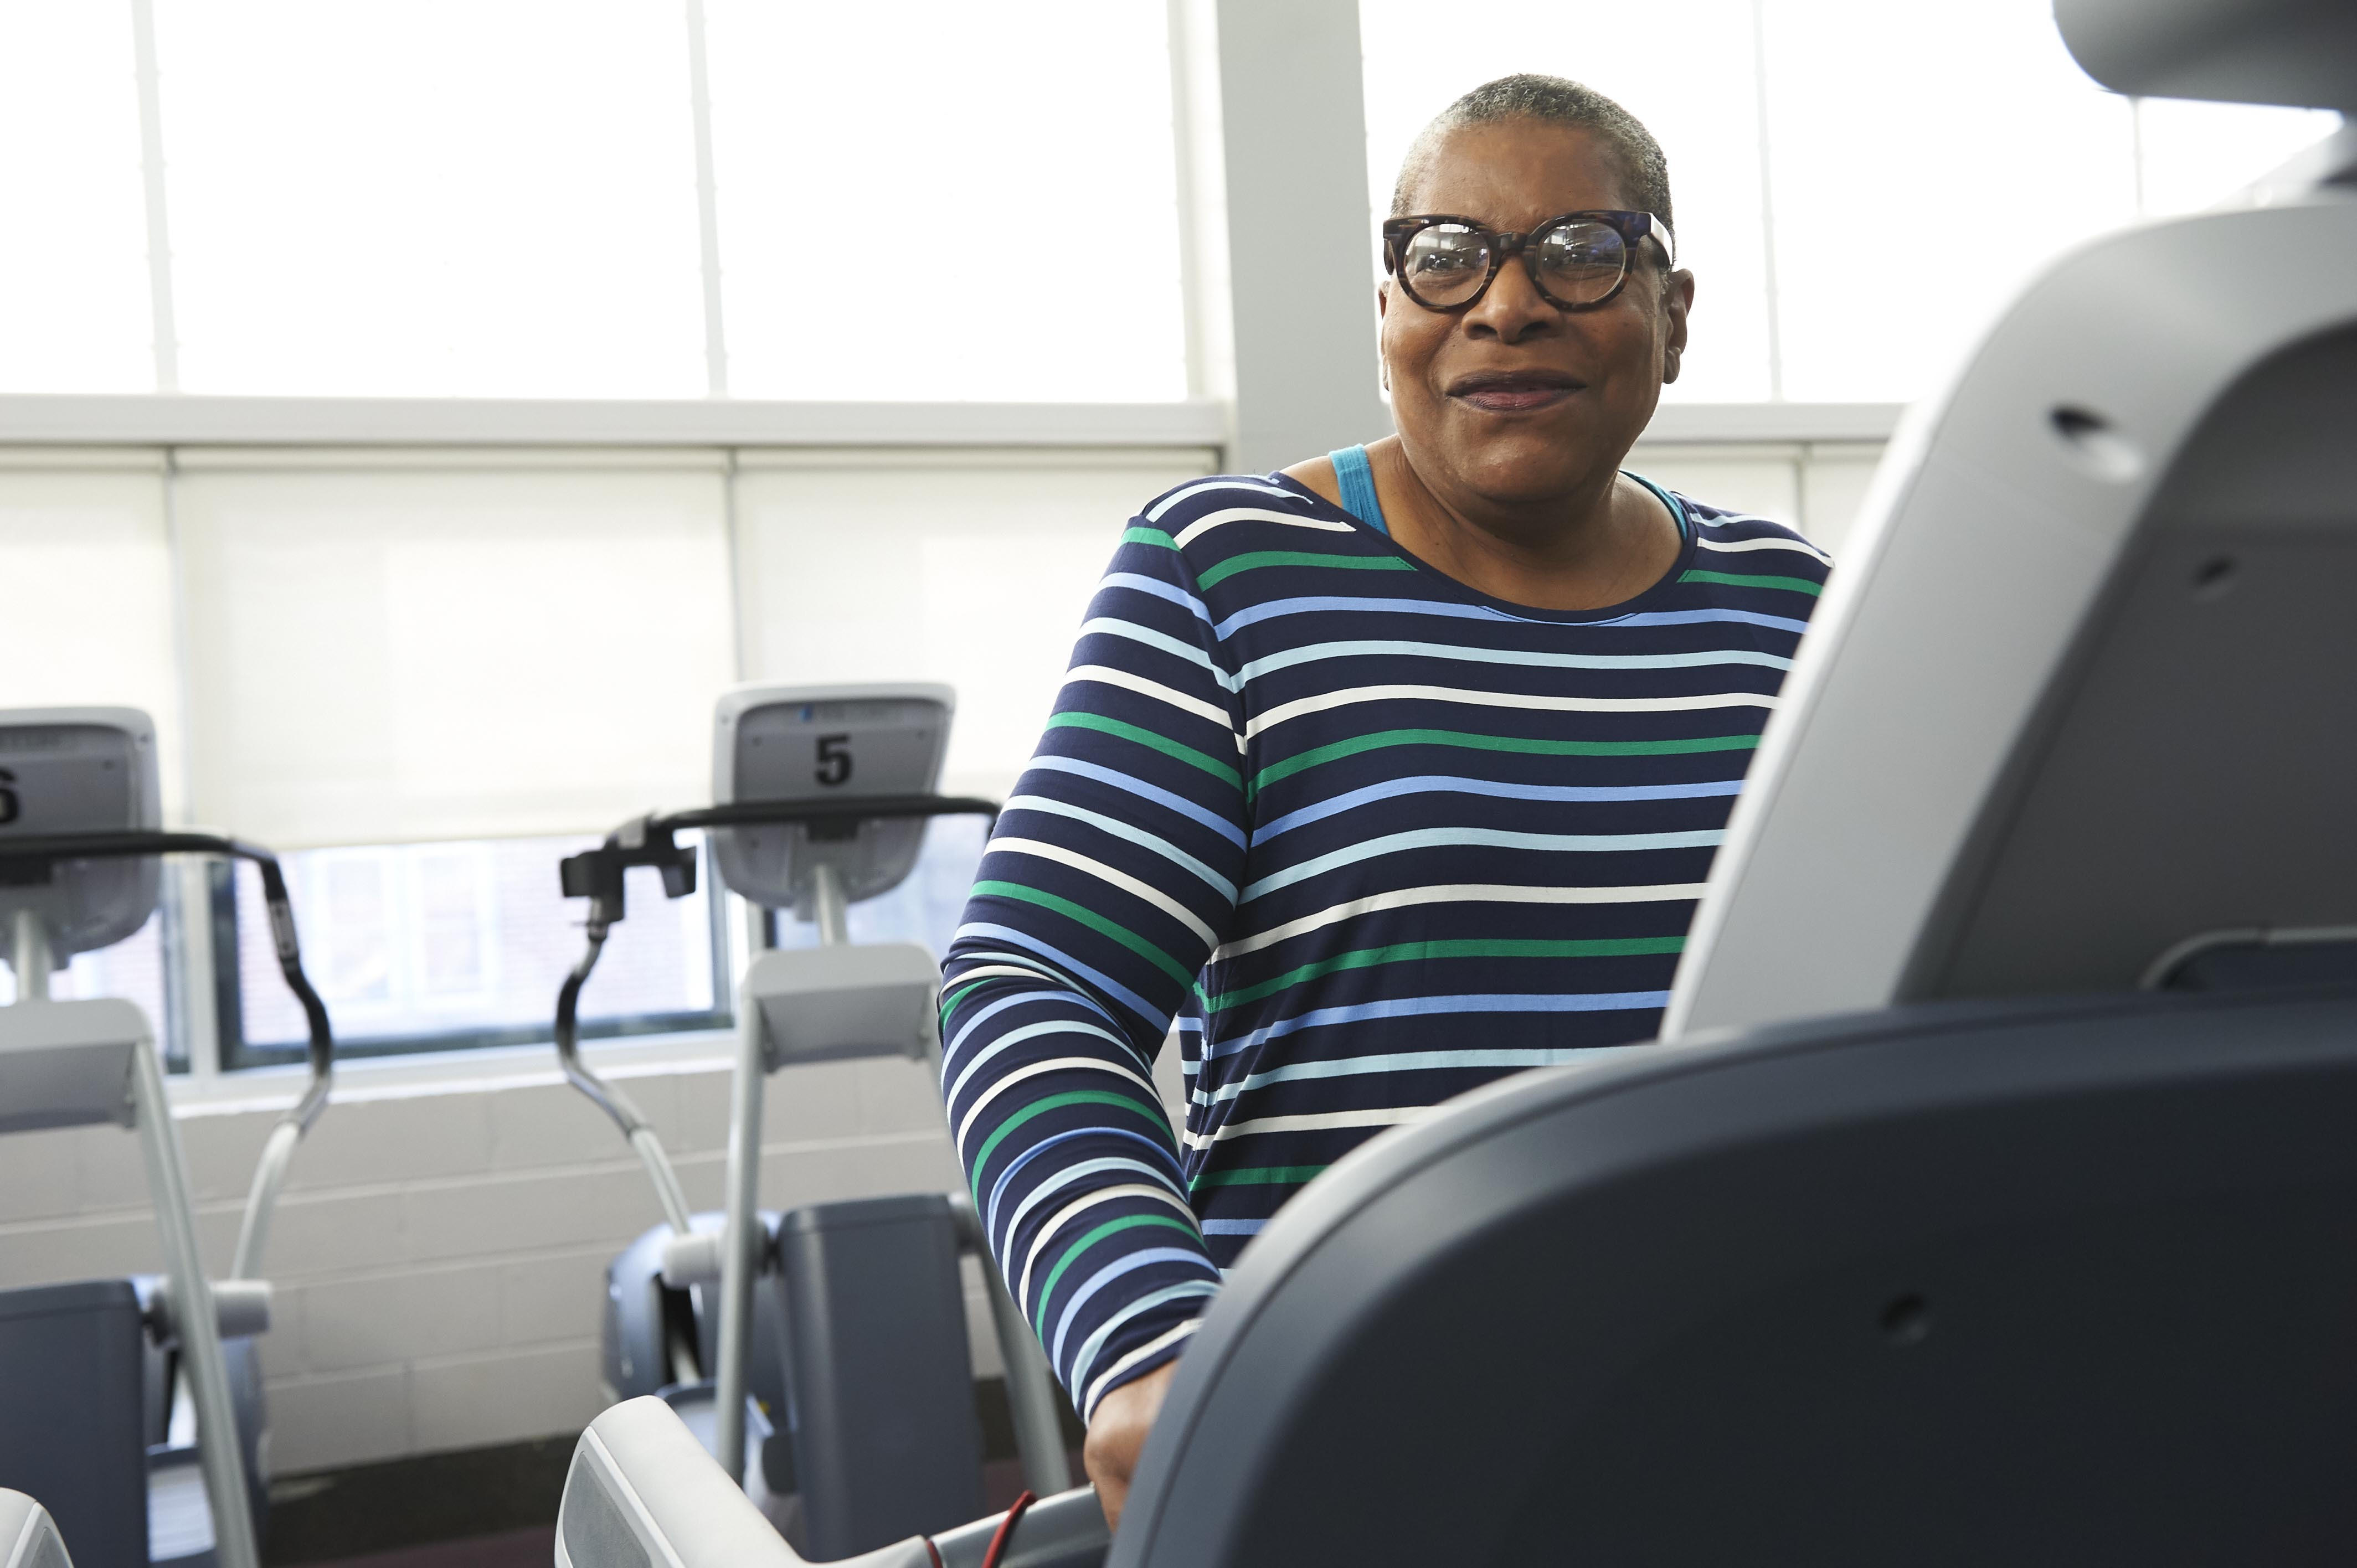 Phyllis Carter exercises on a treadmill